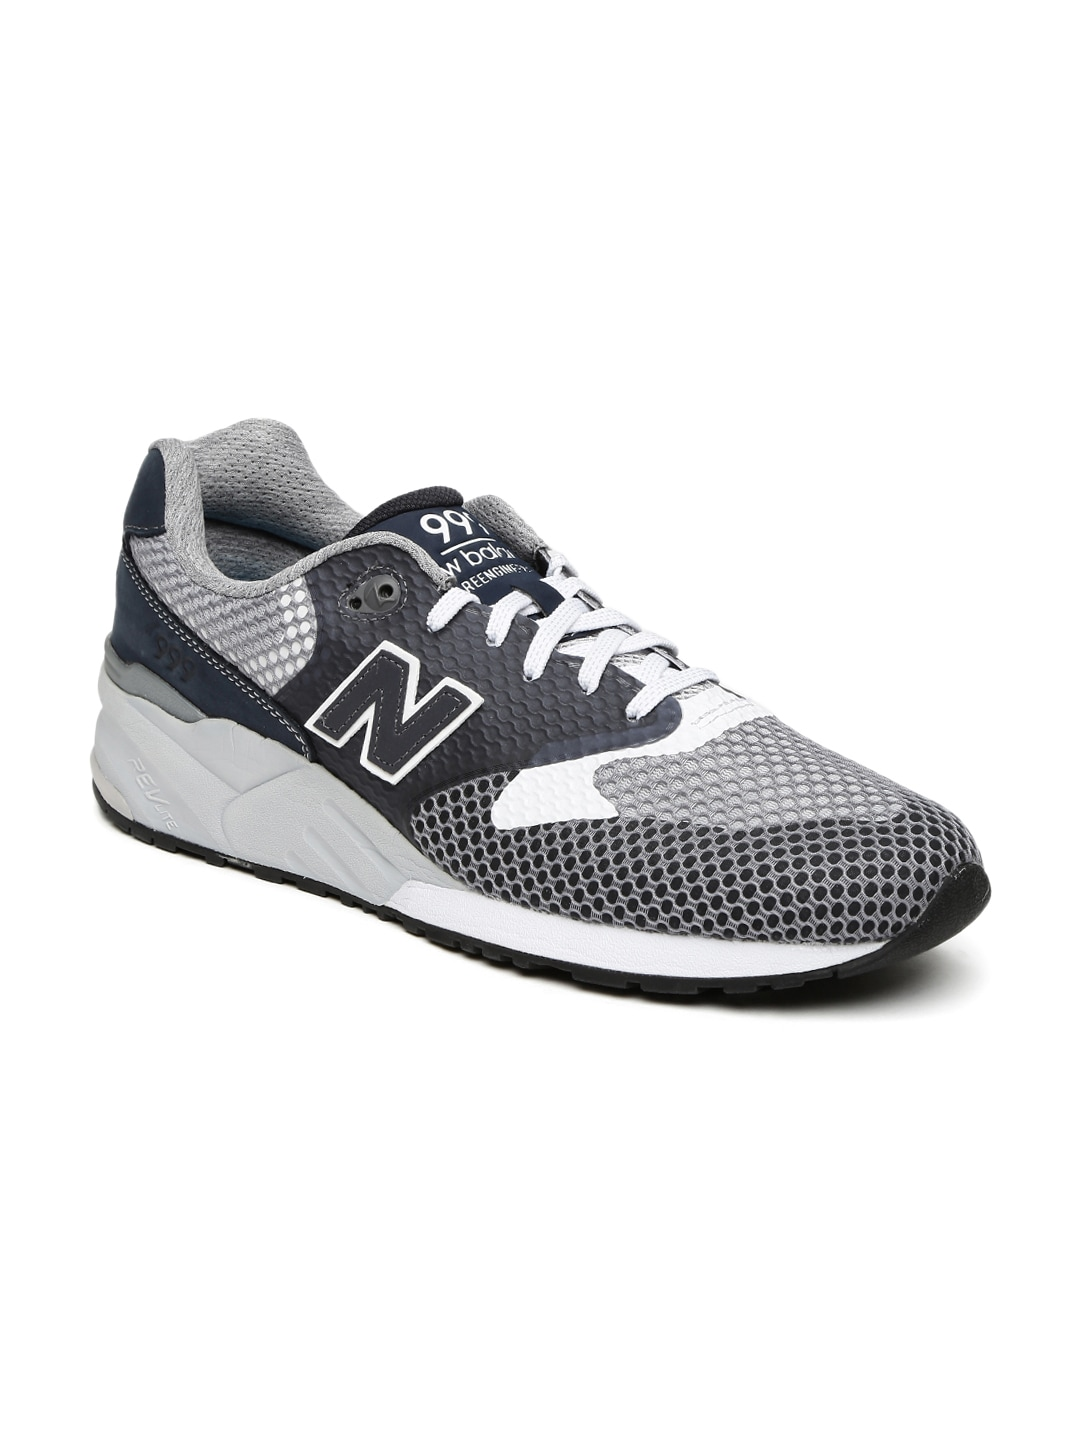 76bfcce86 Men New Balance - Buy Men New Balance online in India